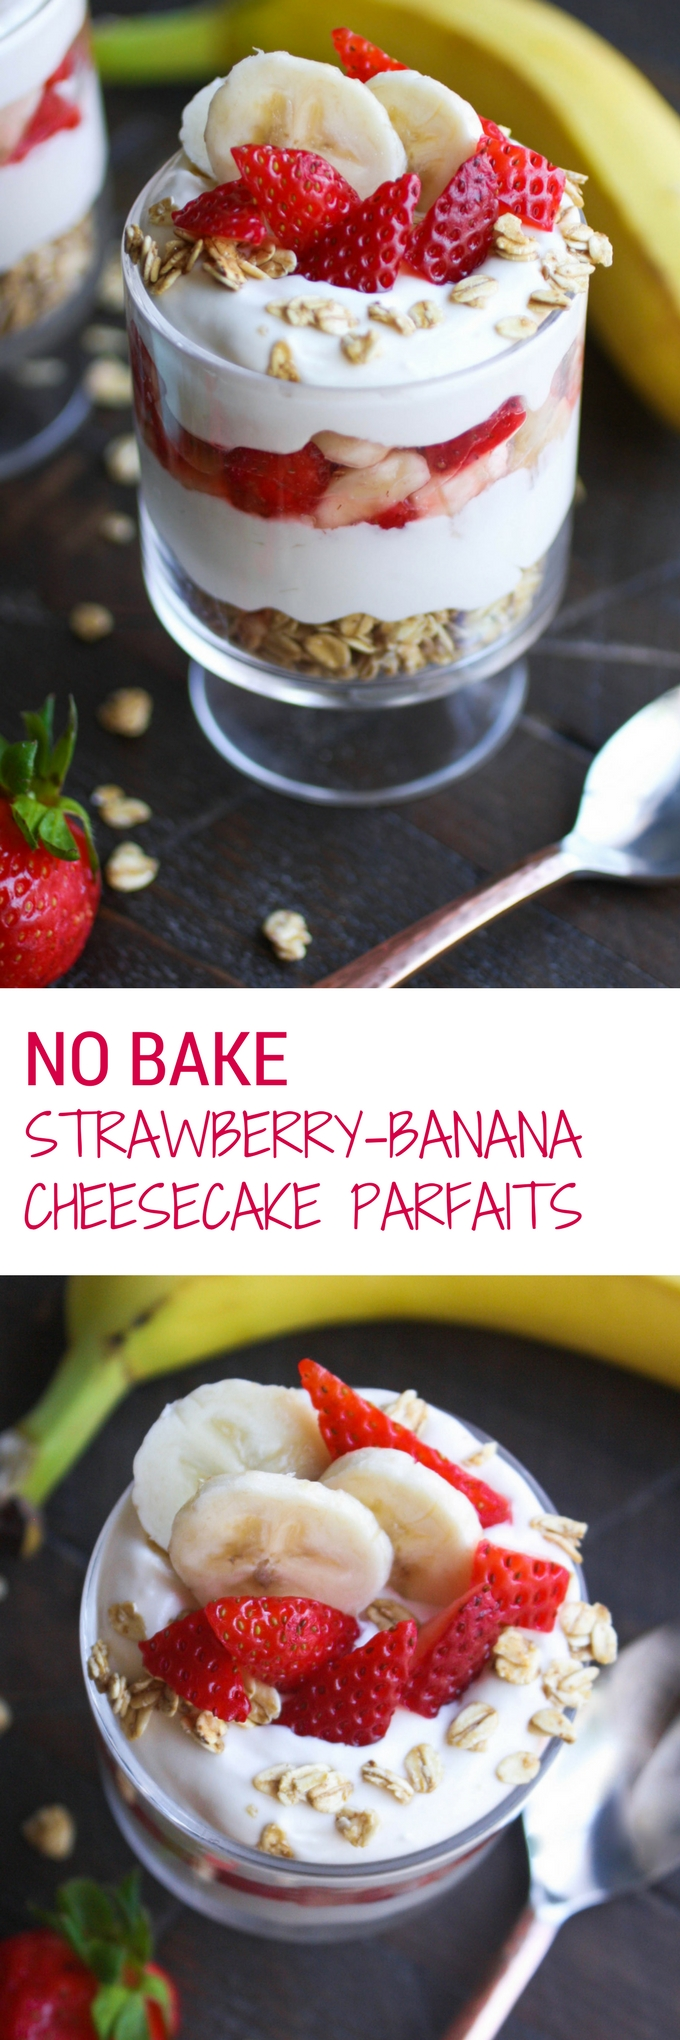 No Bake Strawberry-Banana Cheesecake Parfaits are a wonderful, easy to make dessert. You'll love not turning on the oven for these cheesecake treats with fresh fruit!